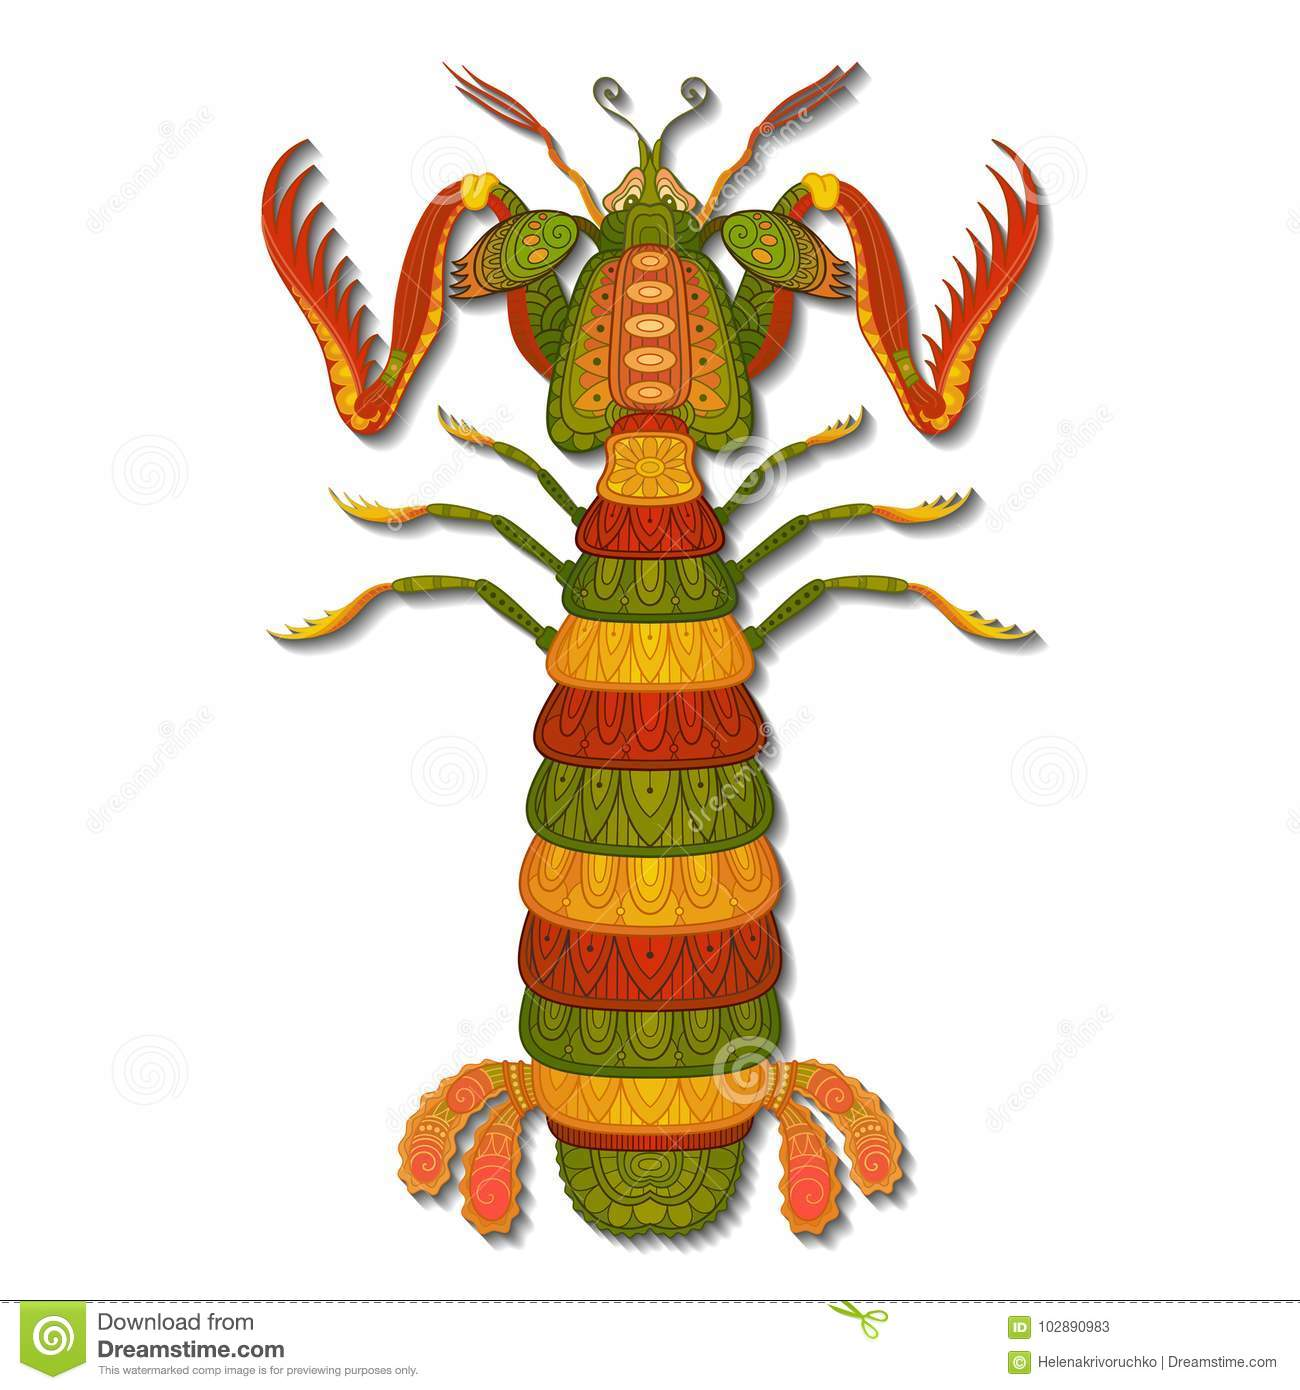 Vector Decorative Mantis Shrimp For Coloring Book Stock